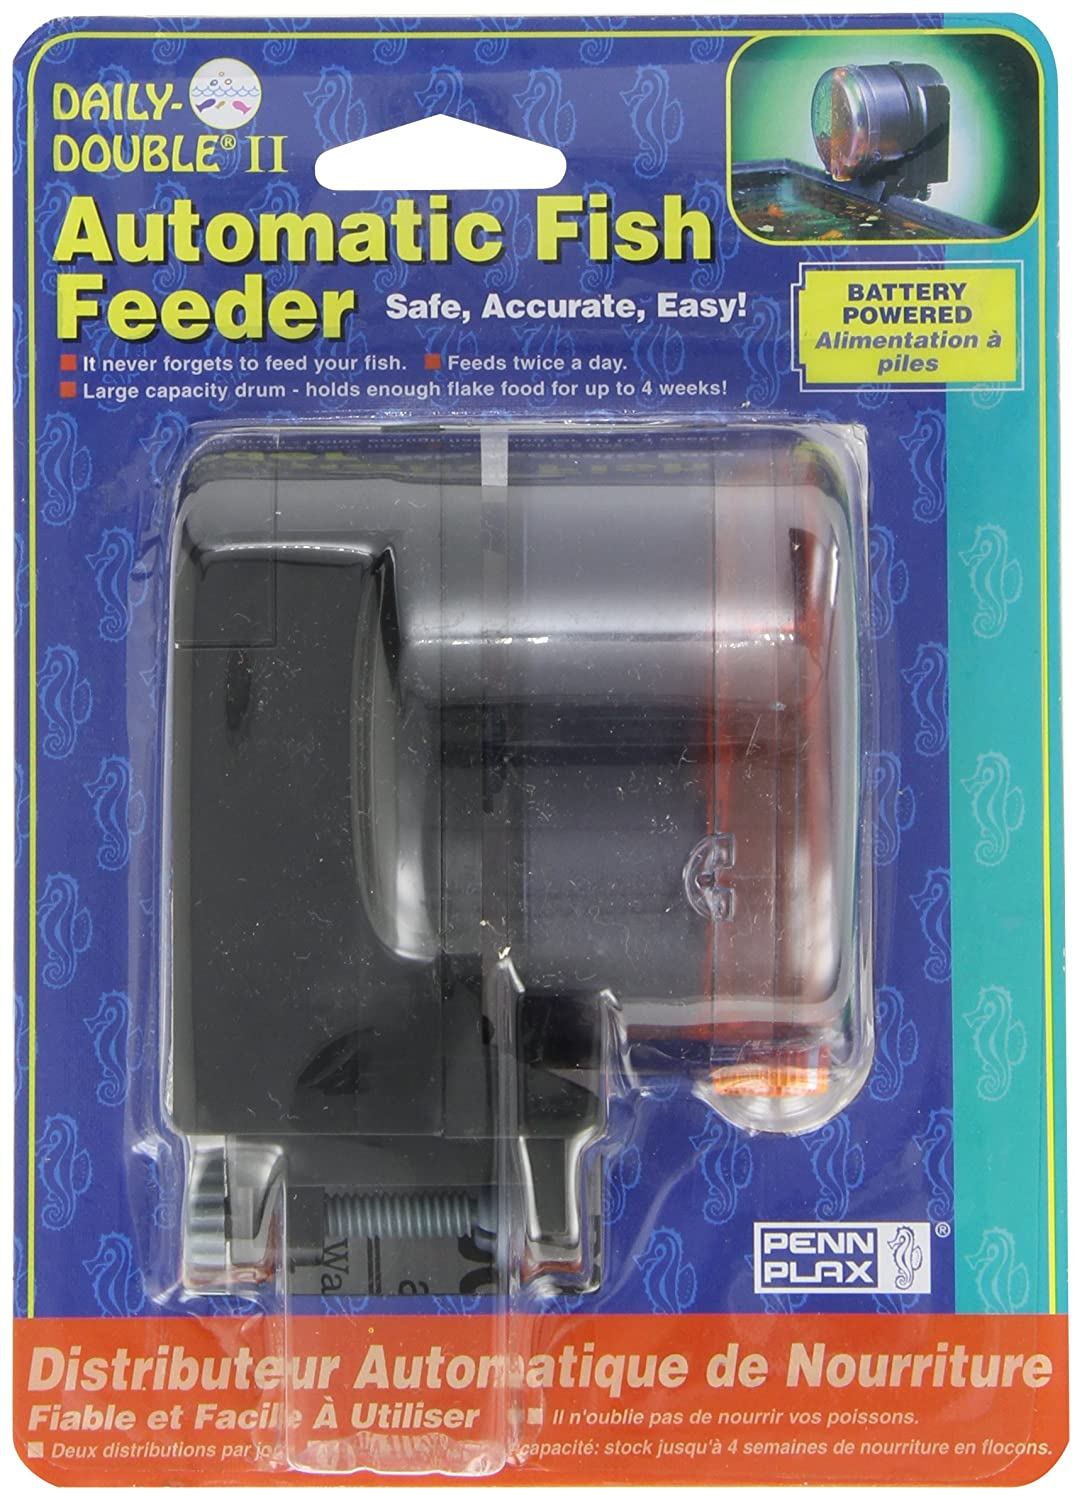 B0002565NO Penn-Plax Daily Double II Battery-Operated Automatic Fish Feeder 91v5YilPuOL